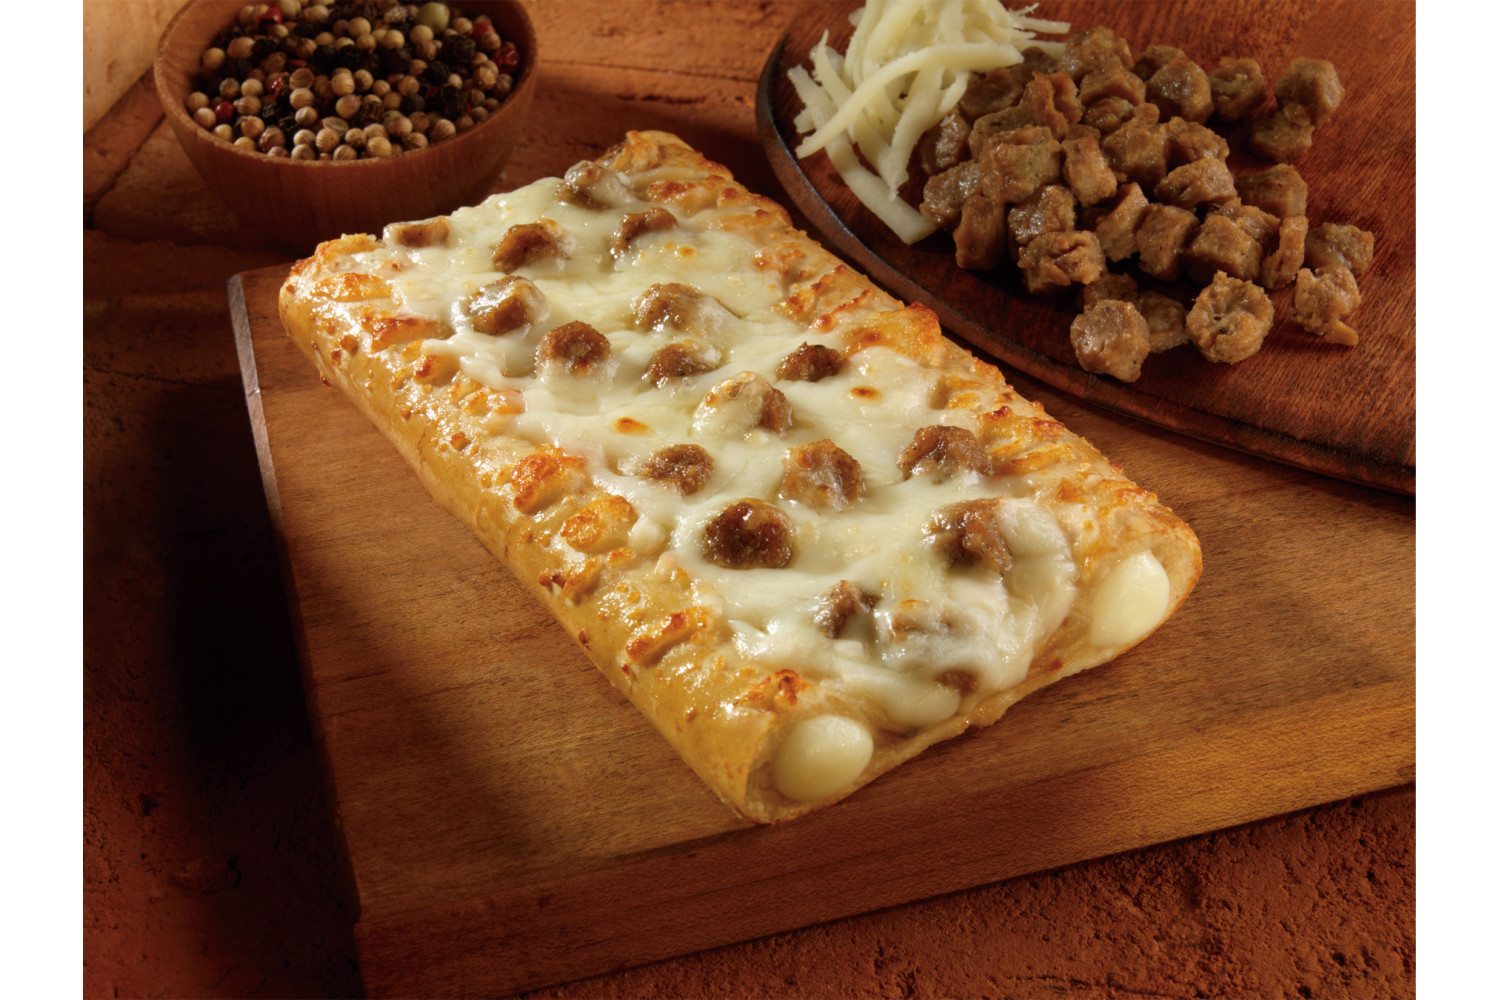 Double Stuff, Sausage & Gravy Breakfast Pizza, Whole Grain, 3.05 oz, CN